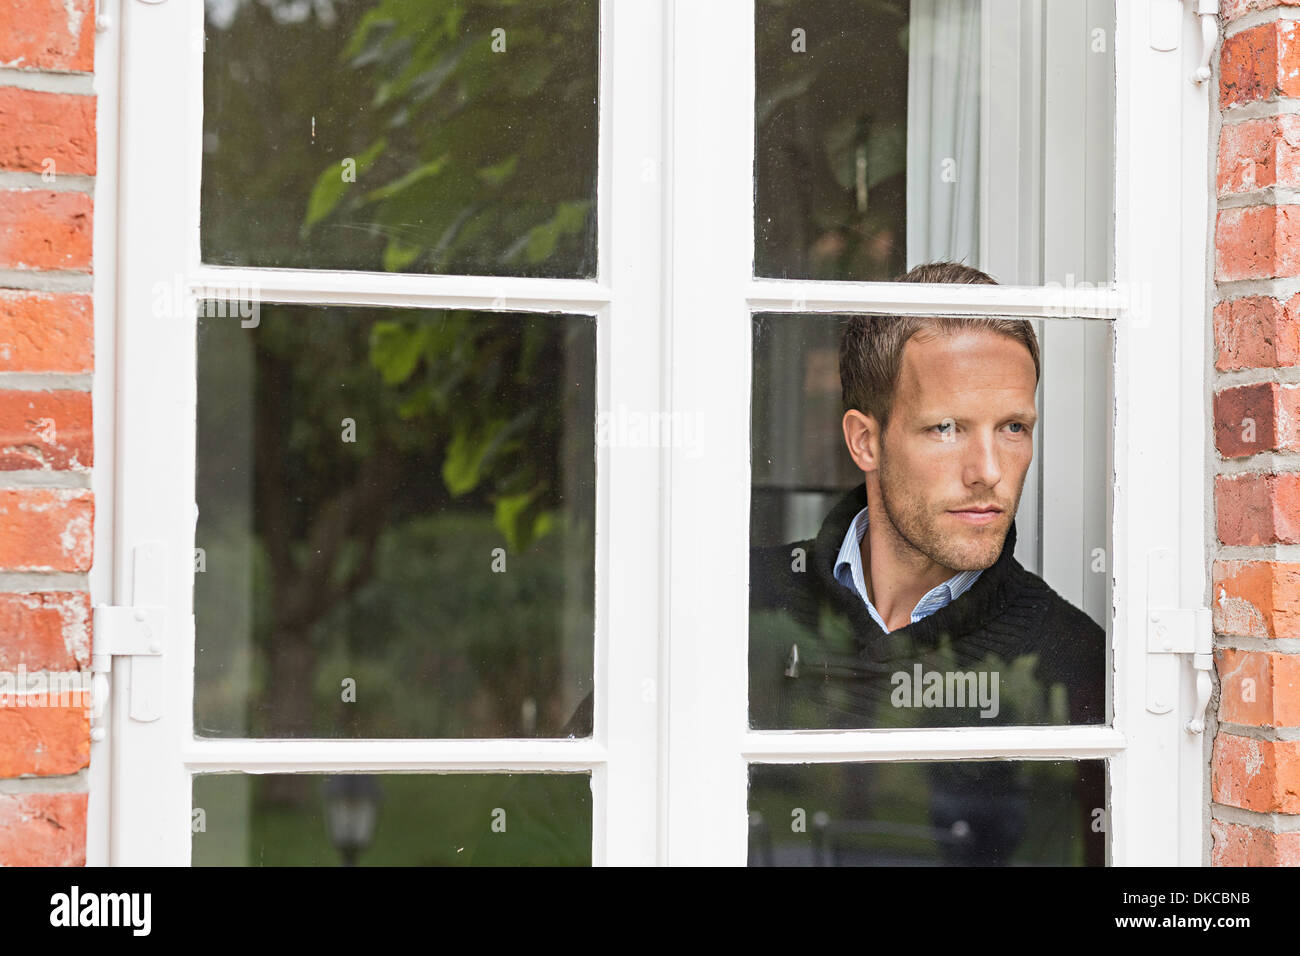 Mid adult man looking out of window - Stock Image